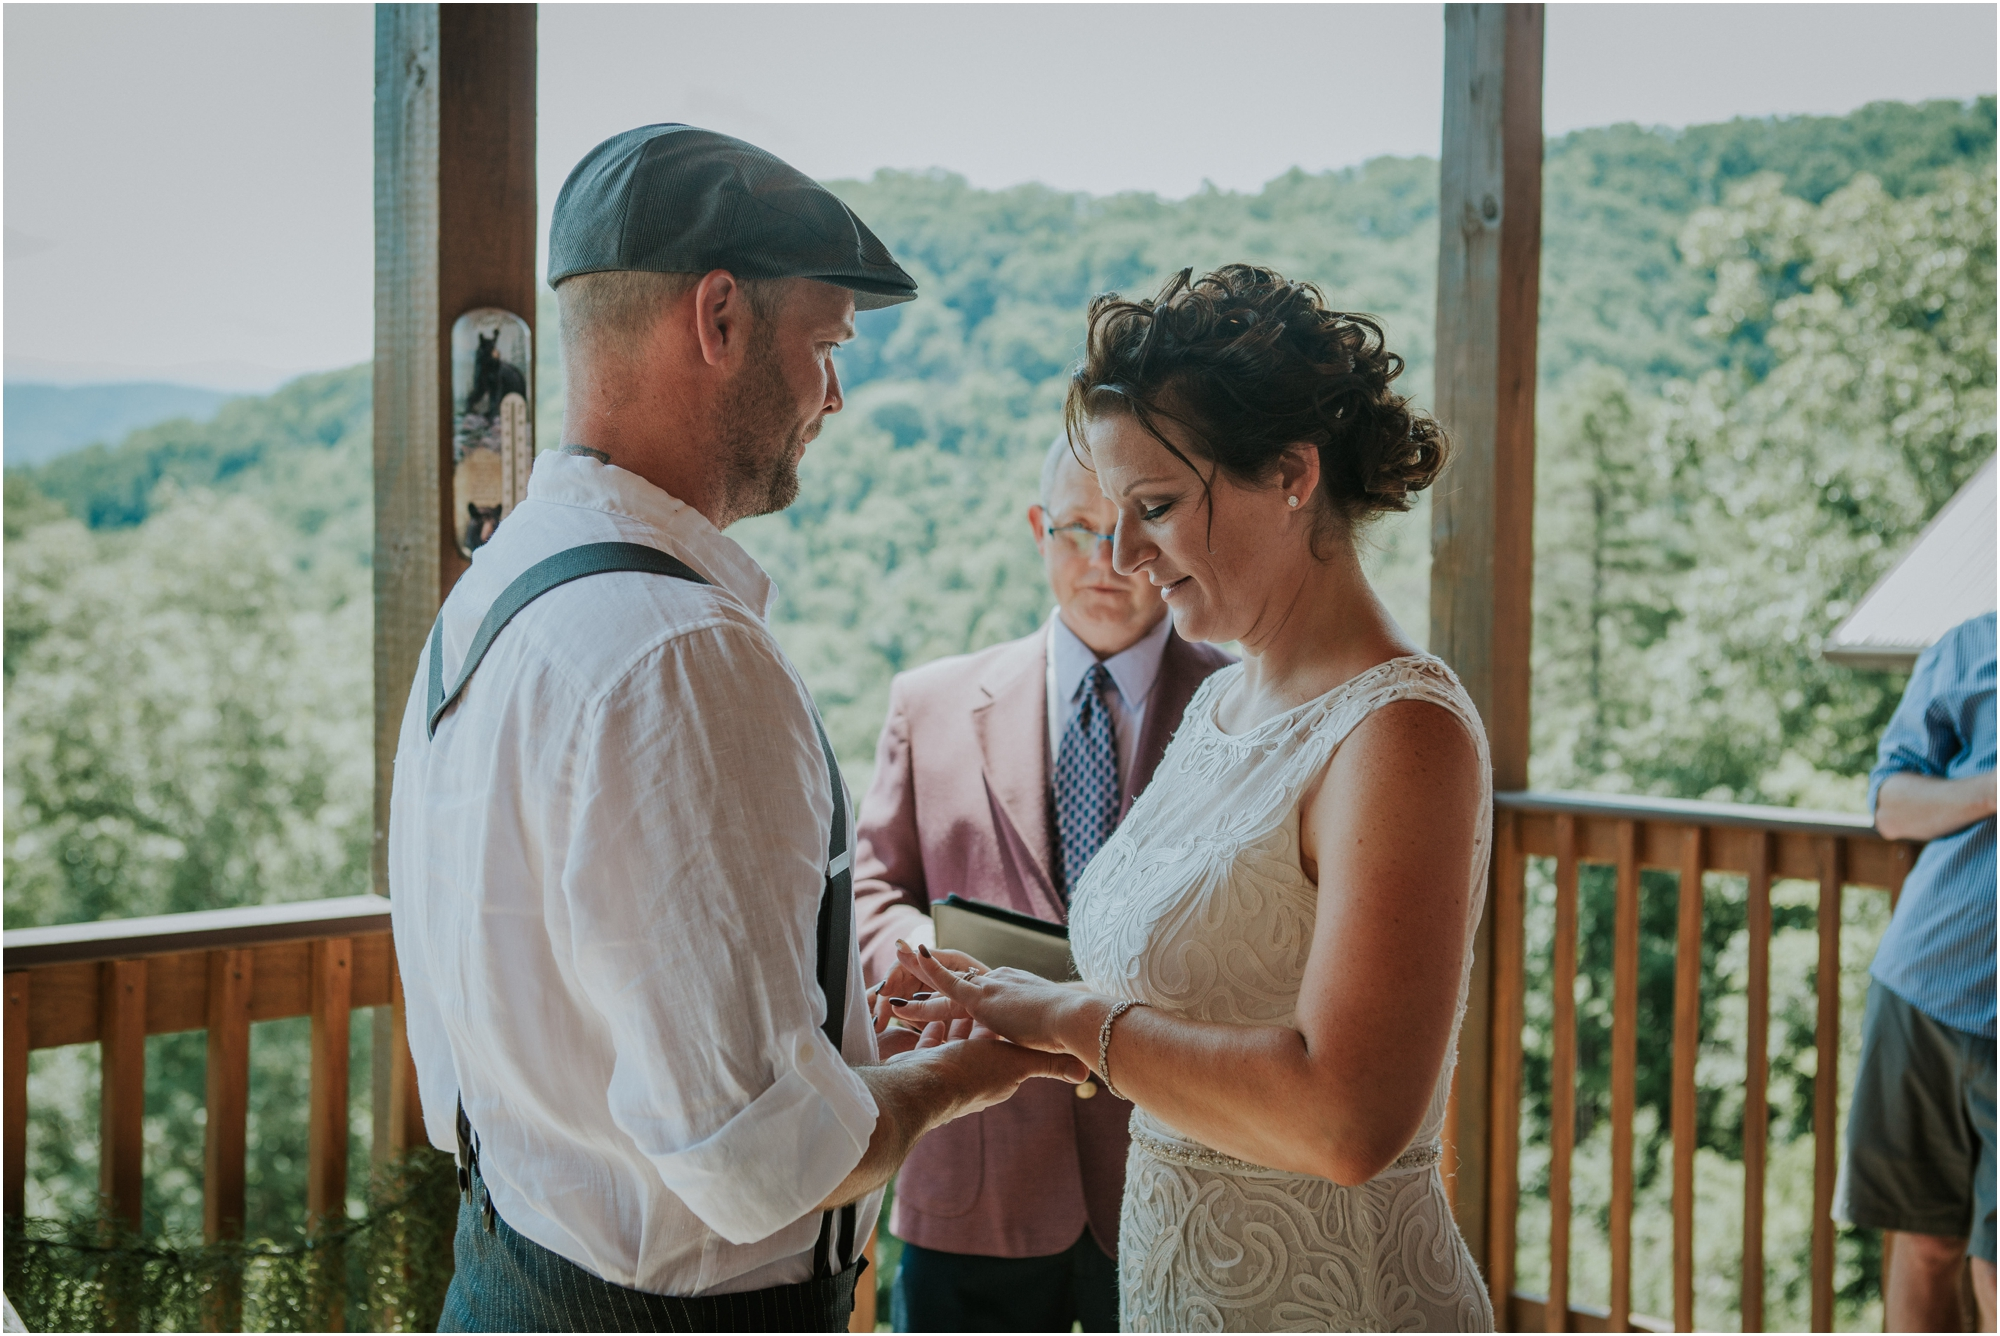 cabin-parkside-resort-the-magnolia-venue-tennessee-mountain-views-intimate-wedding_0140.jpg